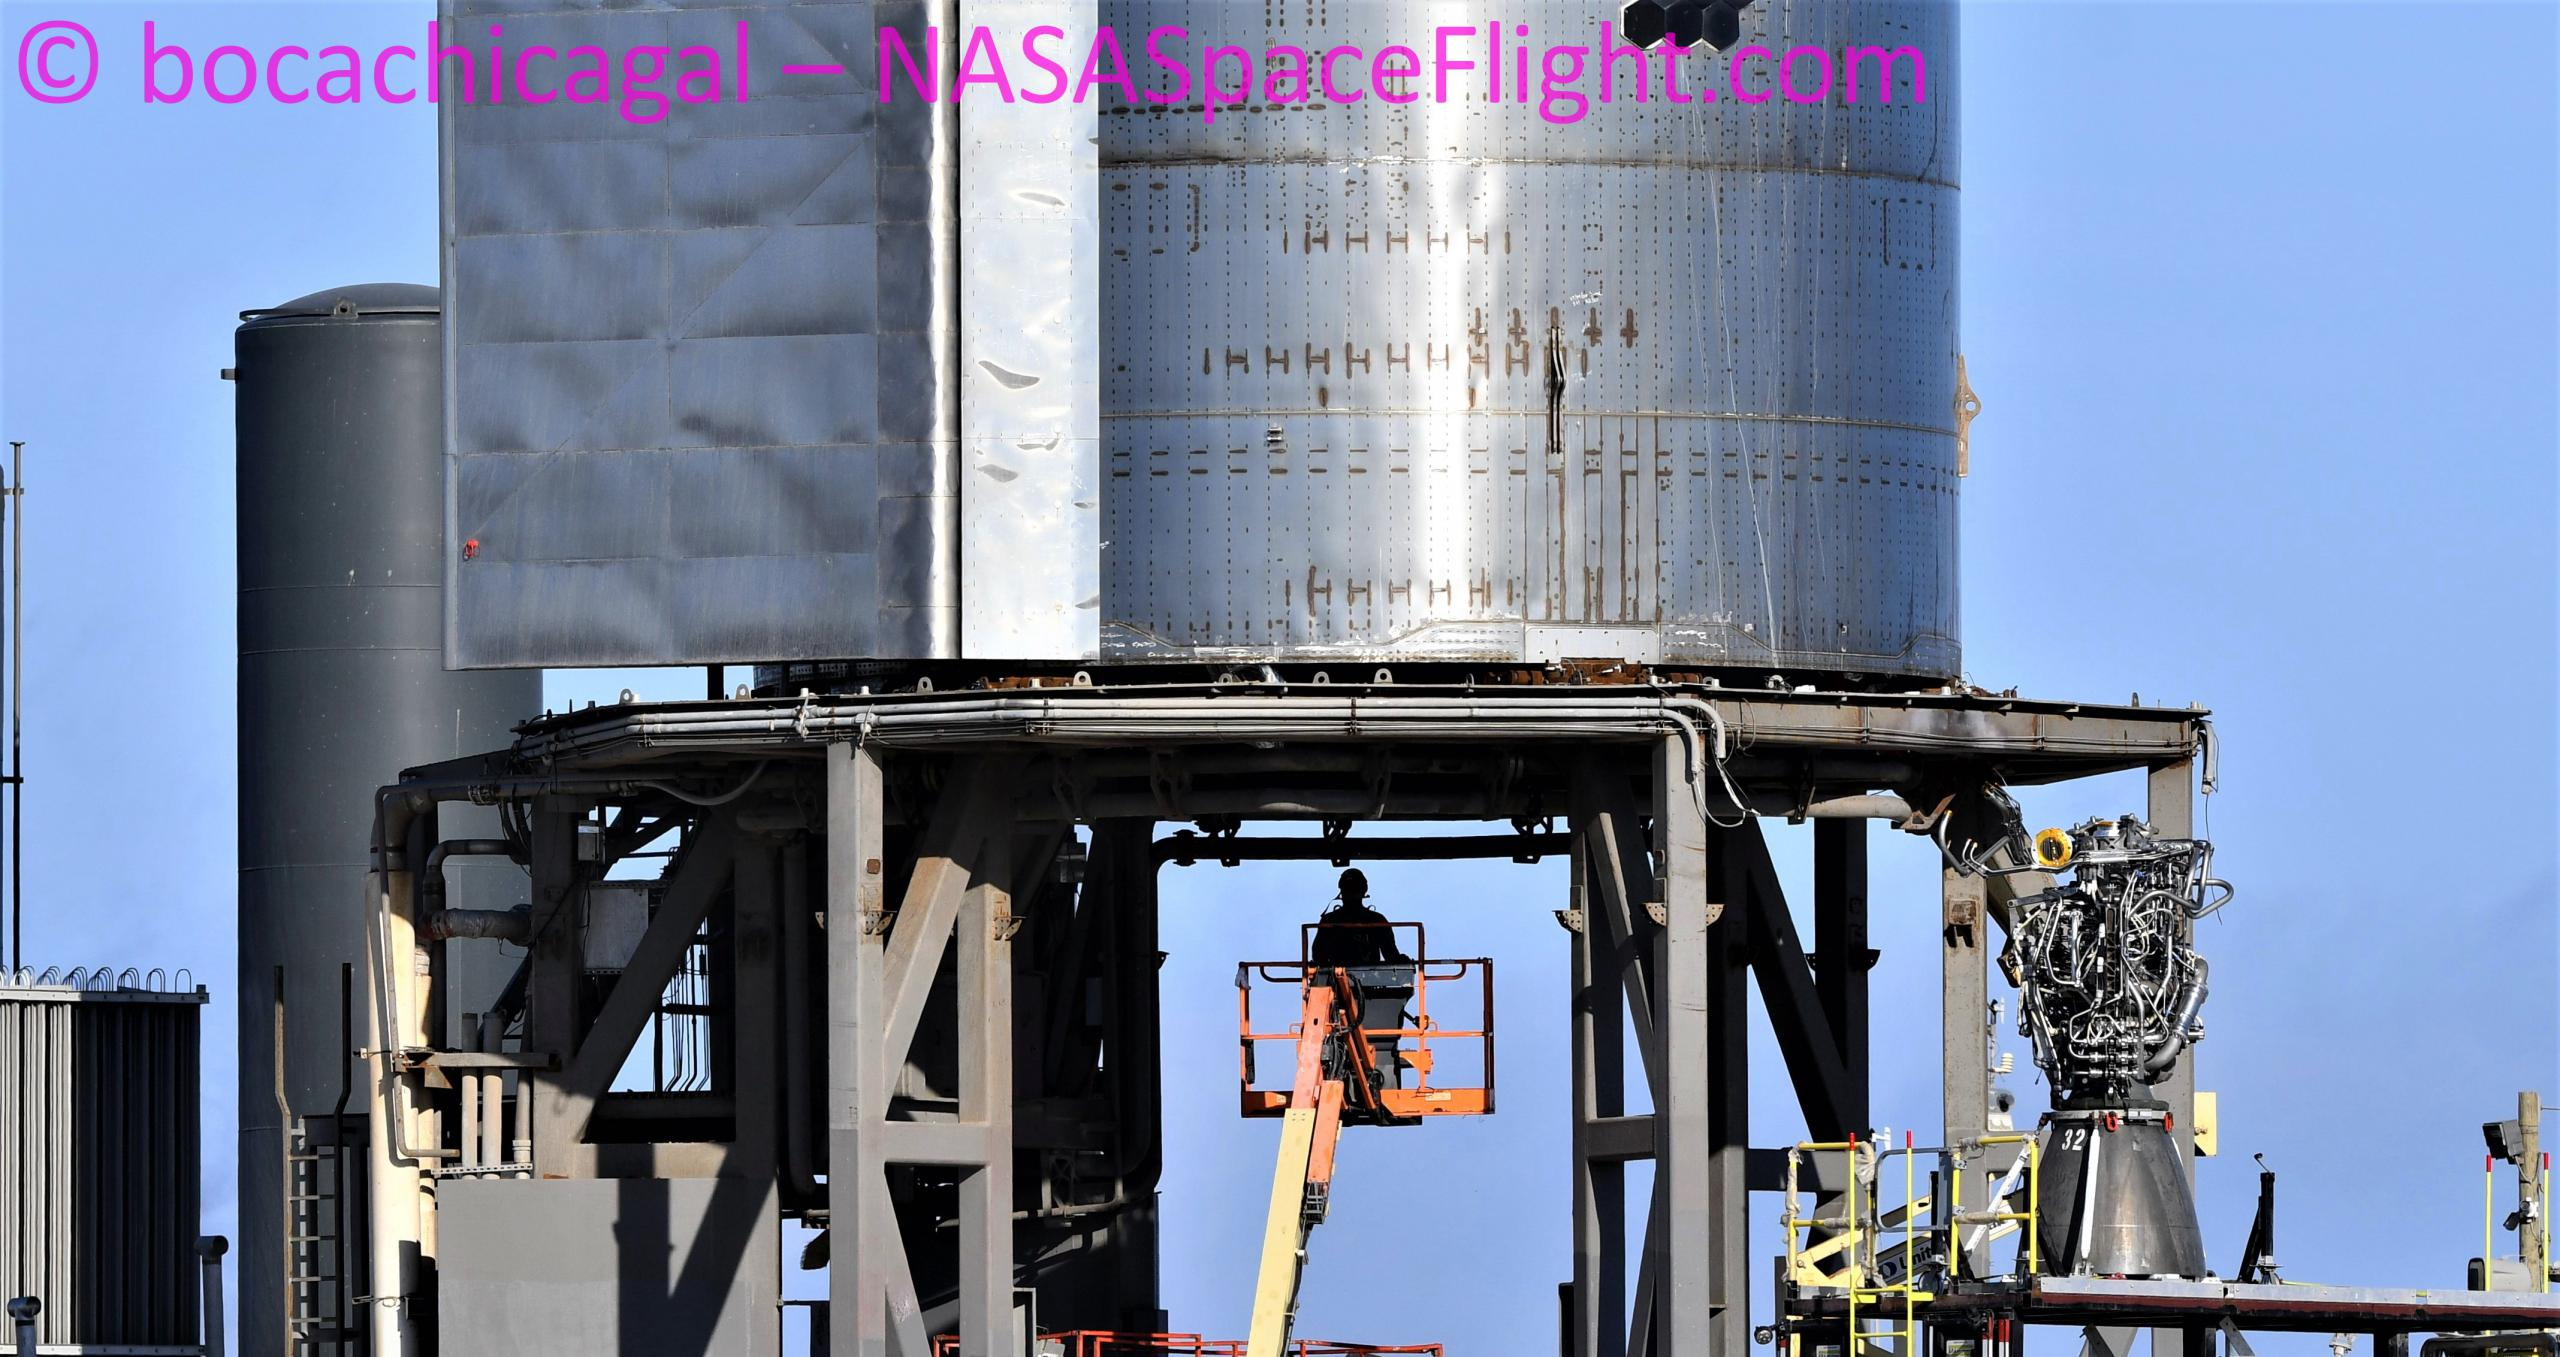 Starship Boca Chica 111420 (NASASpaceflight – bocachicagal) SN8 Raptor SN32 removal 2 crop (c)